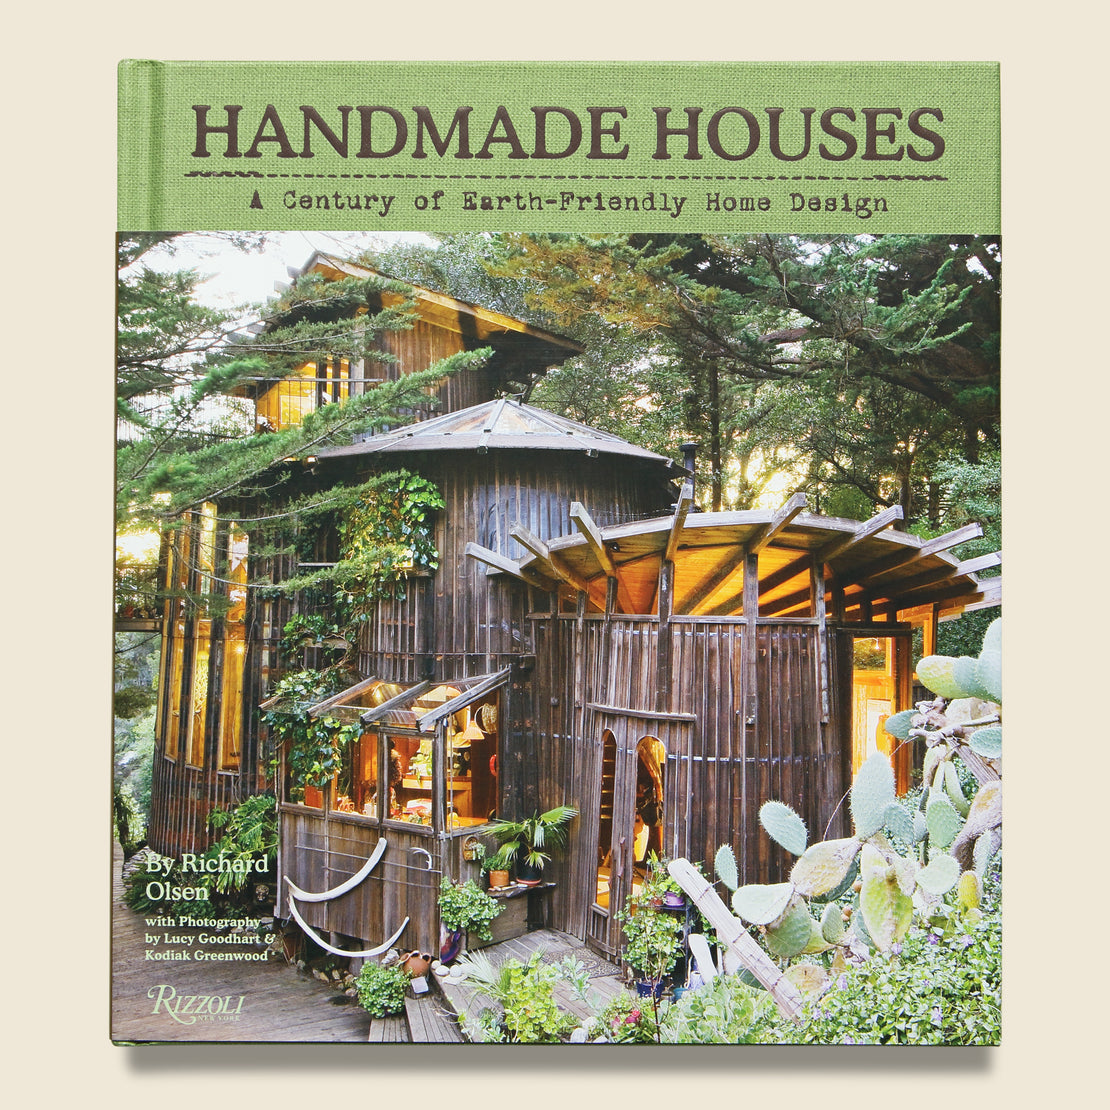 Bookstore Handmade Houses: A Century of Earth-Friendly Home Design - Richard Olsen